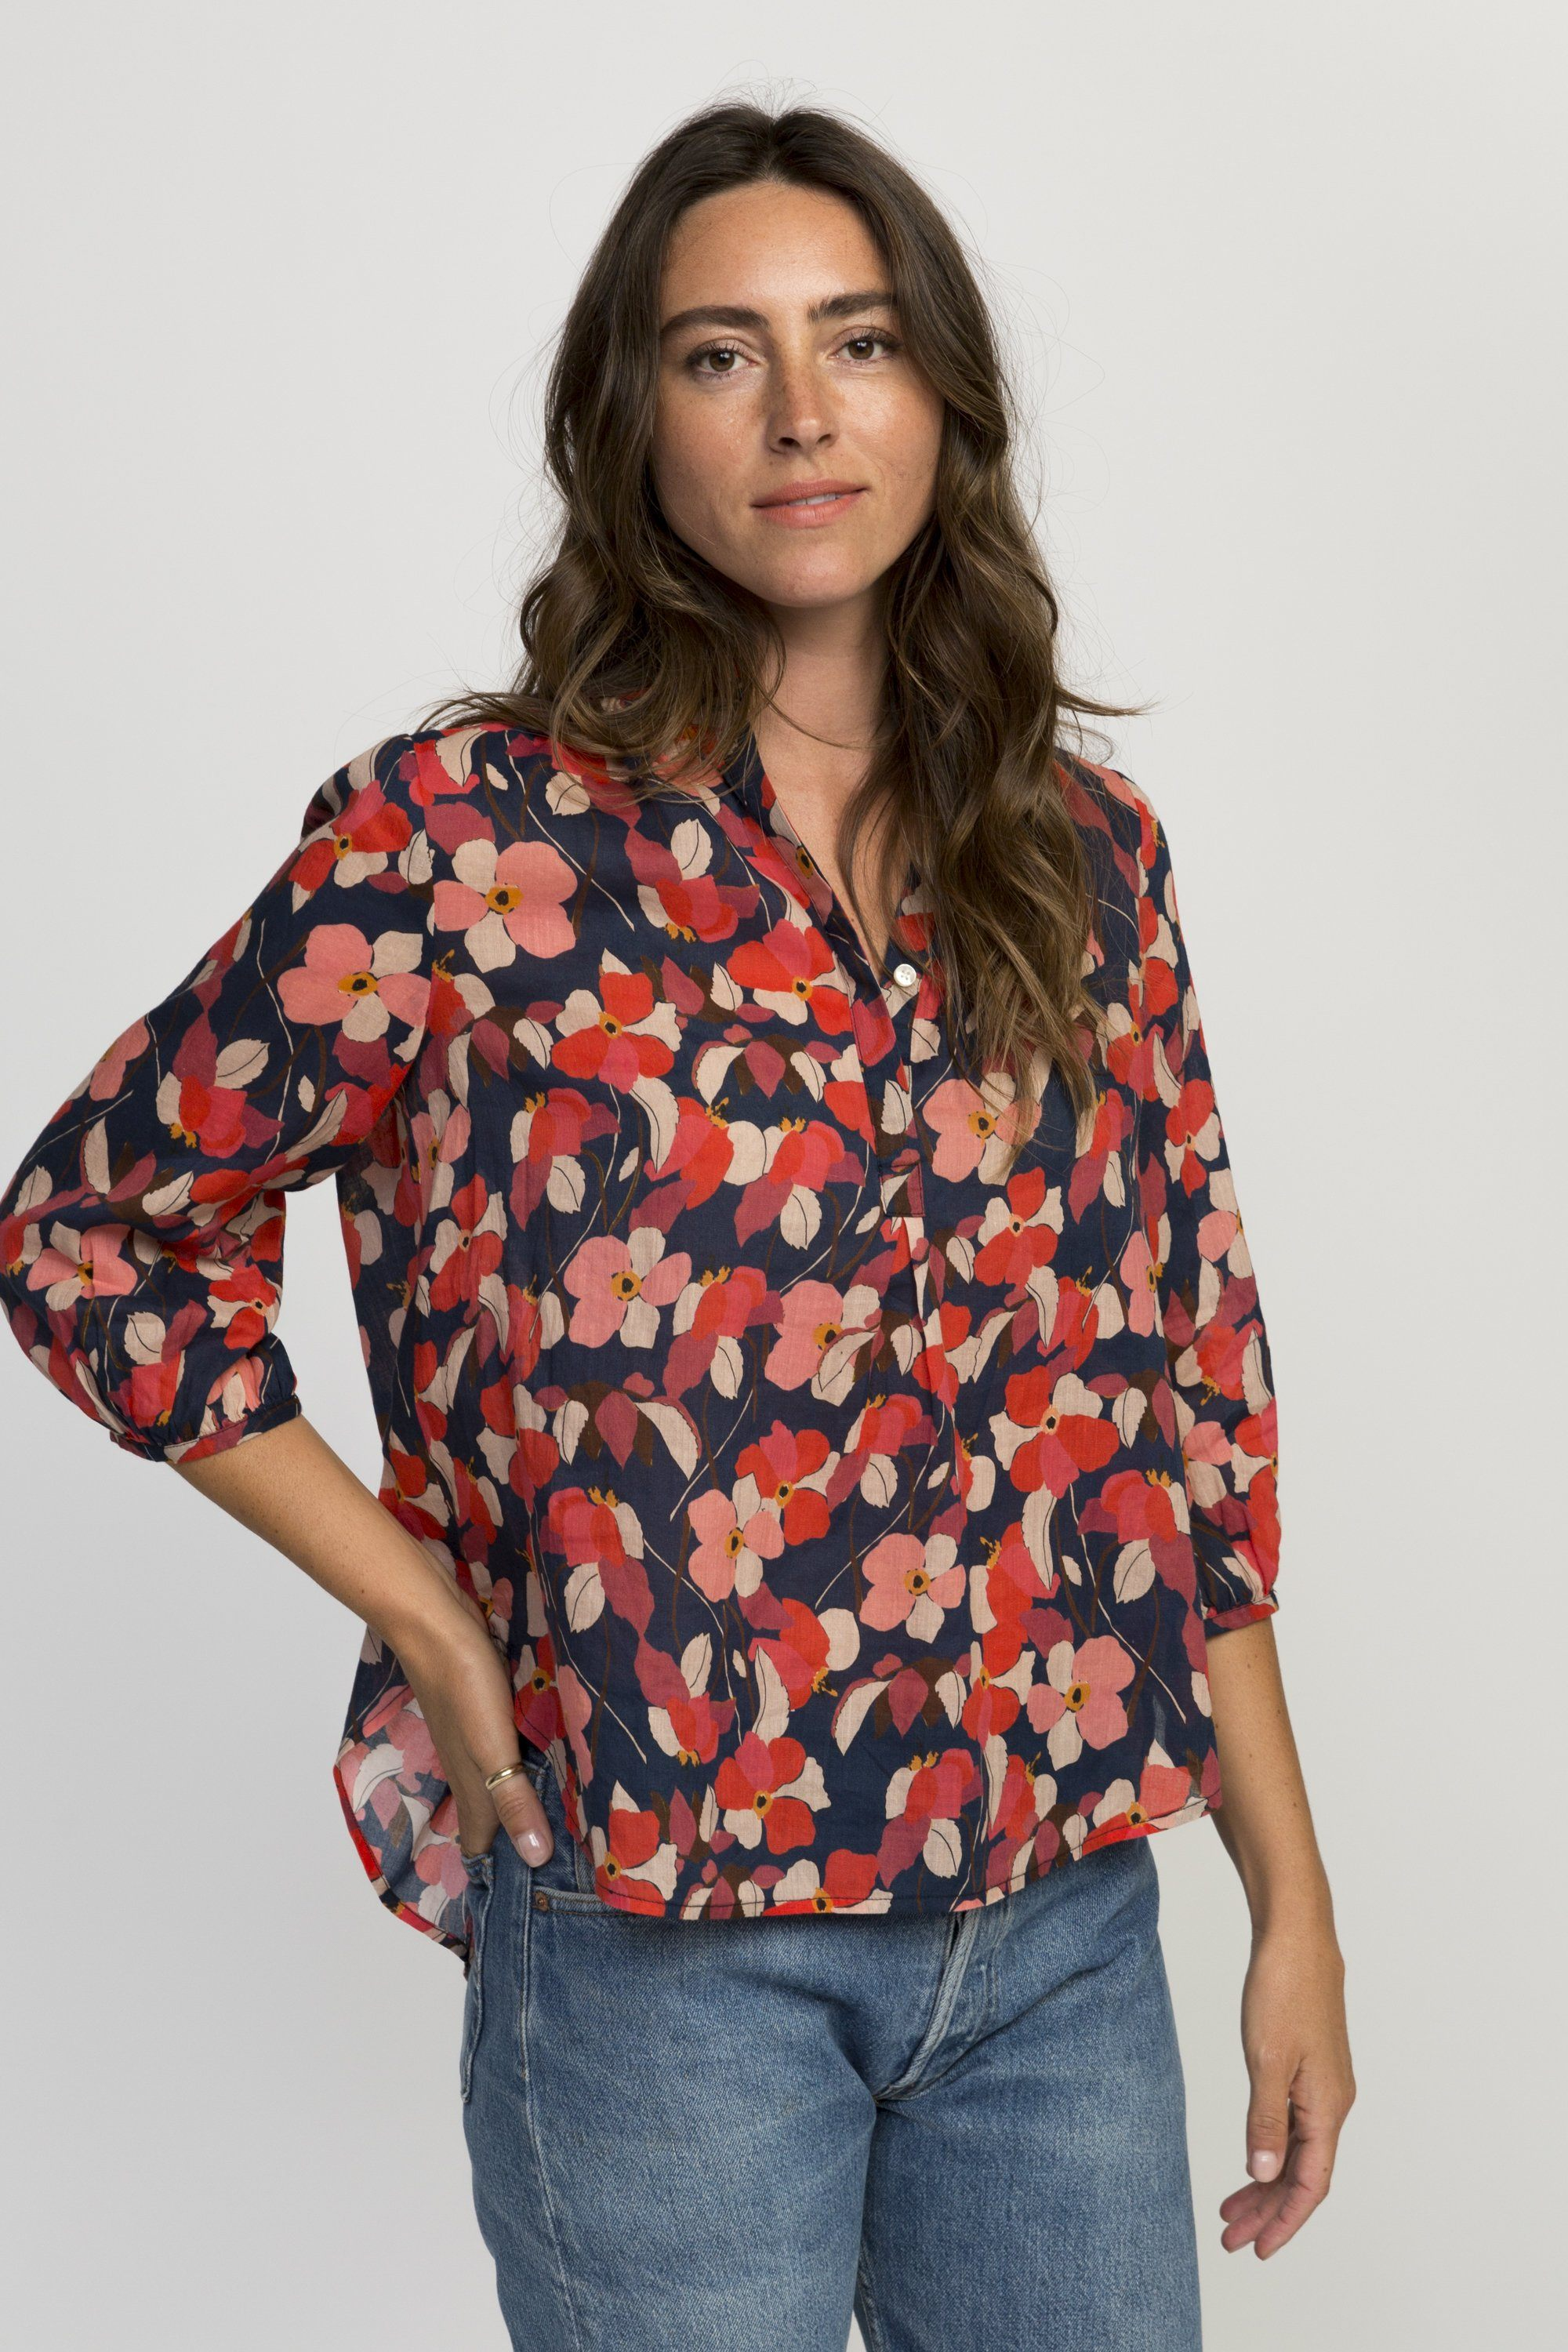 Sara henley shirt NAVY RED FLORAL by Trovata - 2